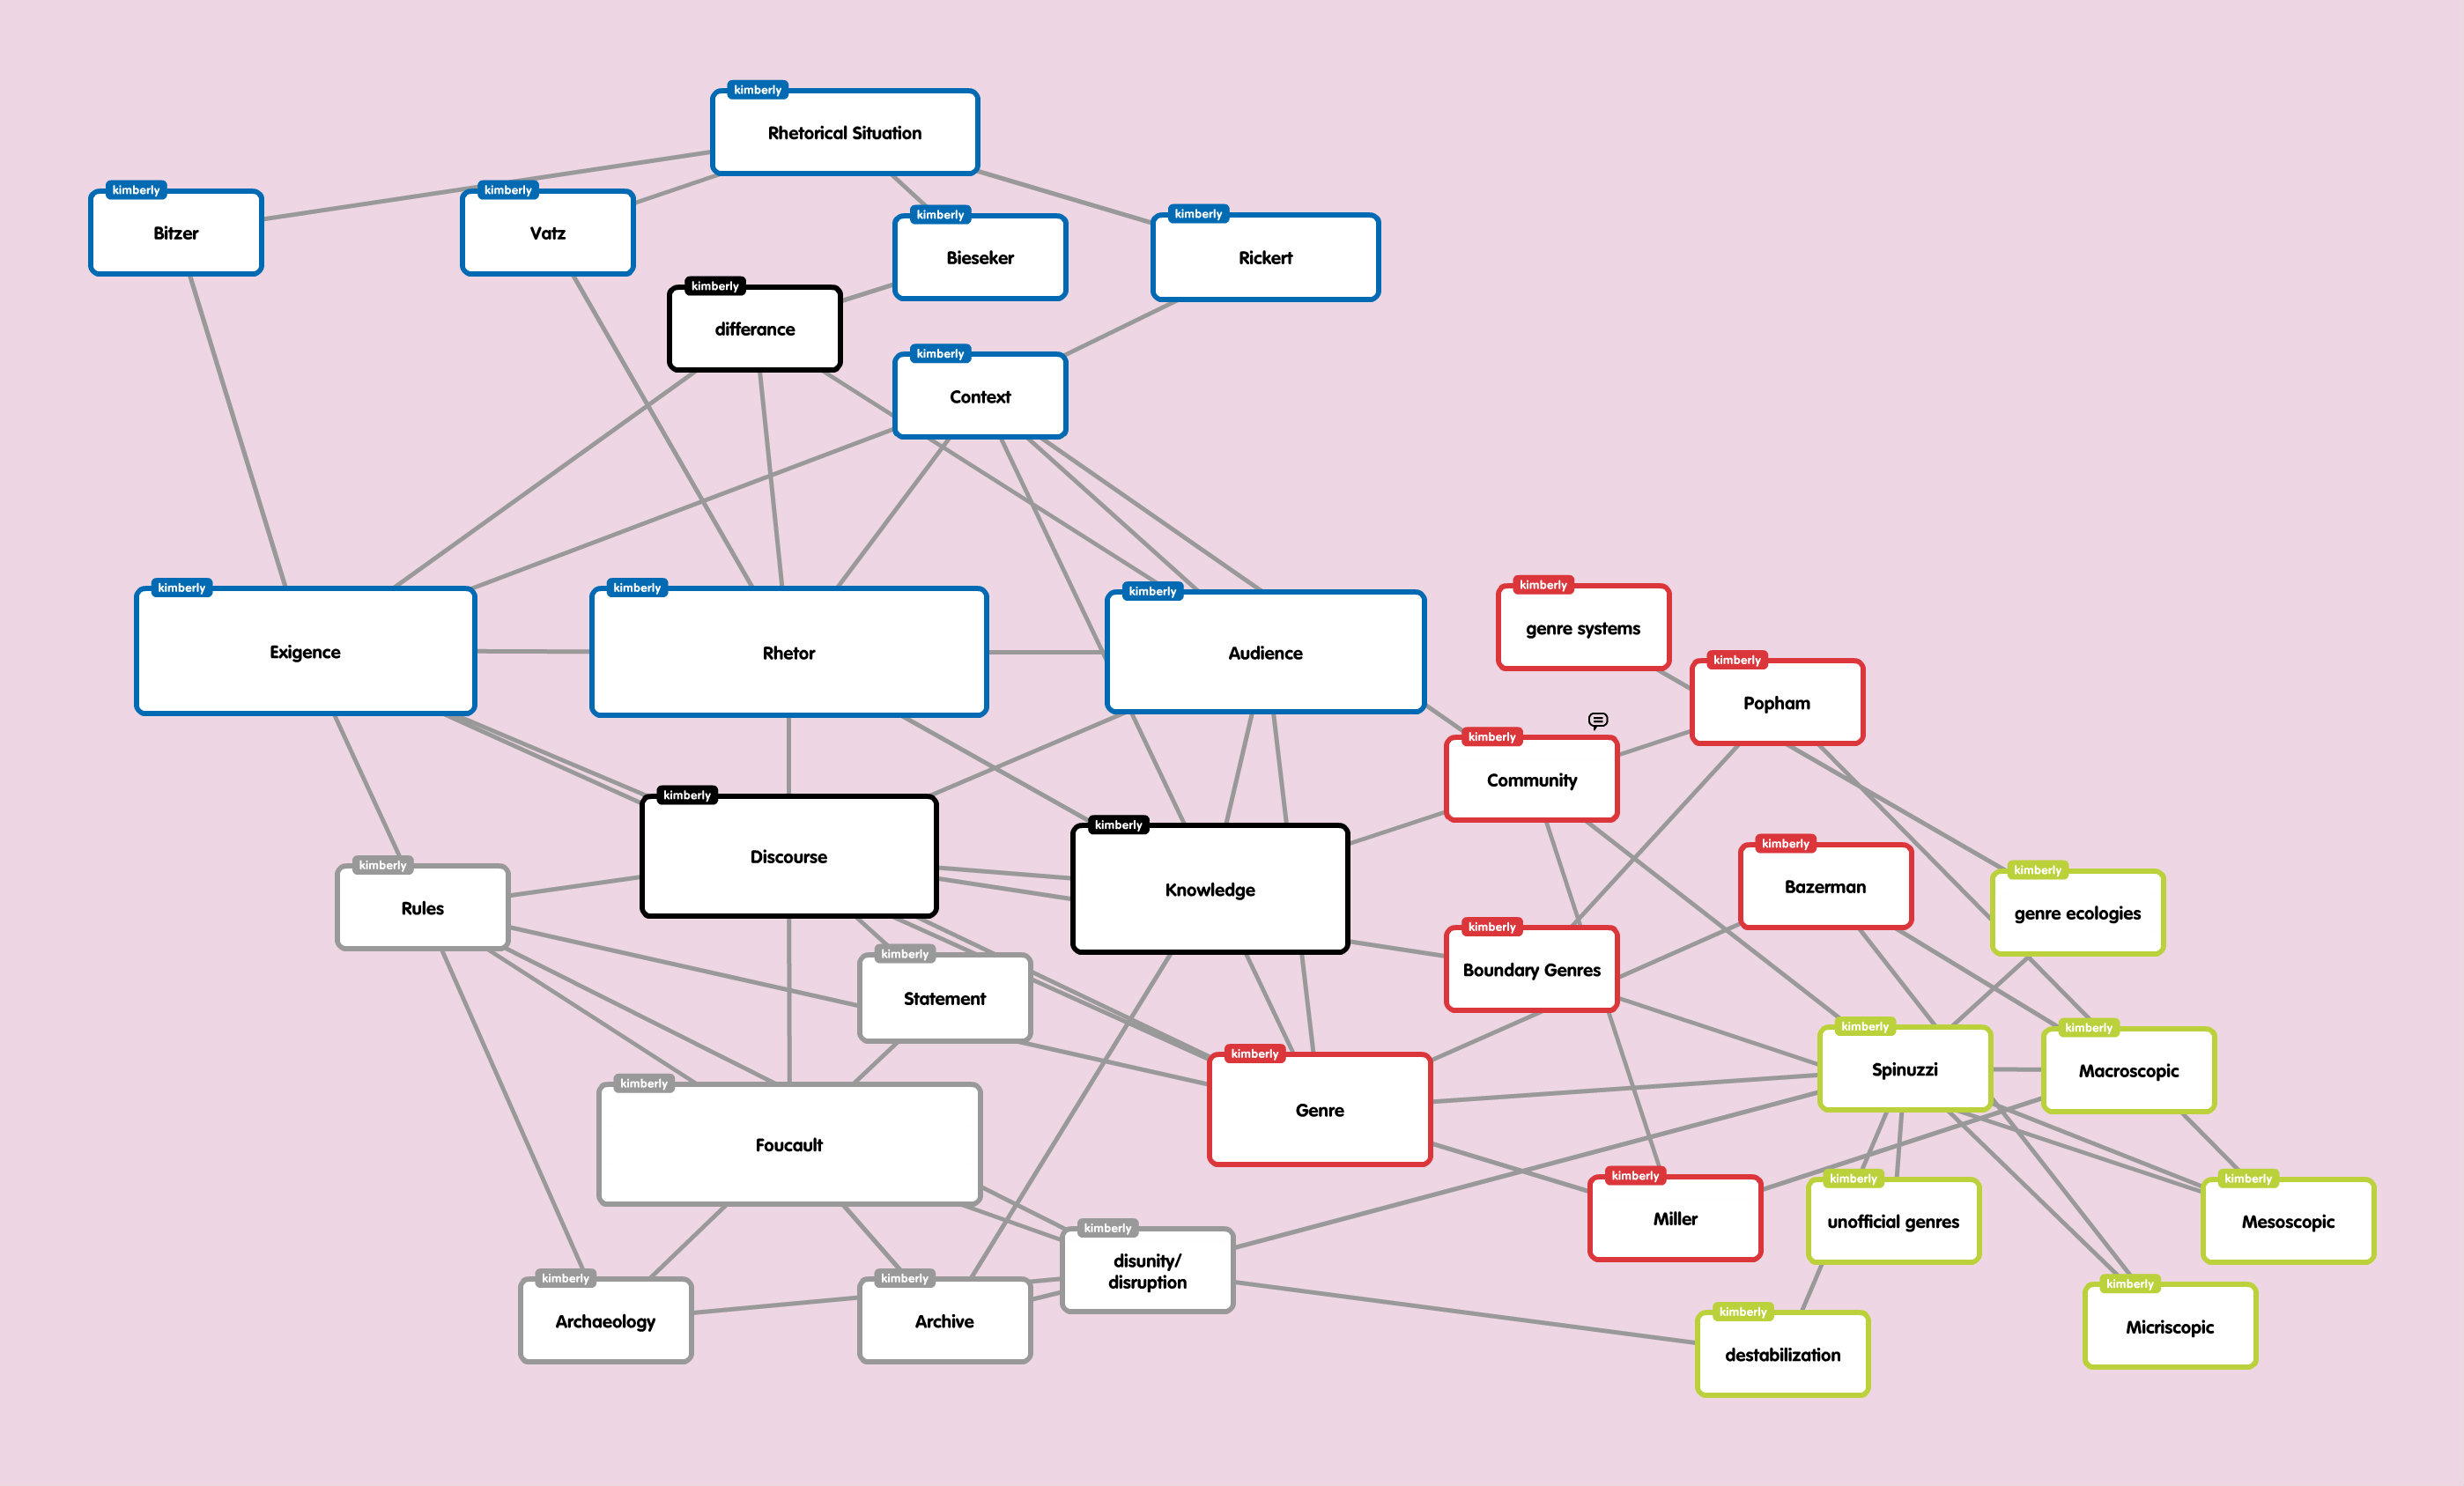 Network Theories Mind Map 3